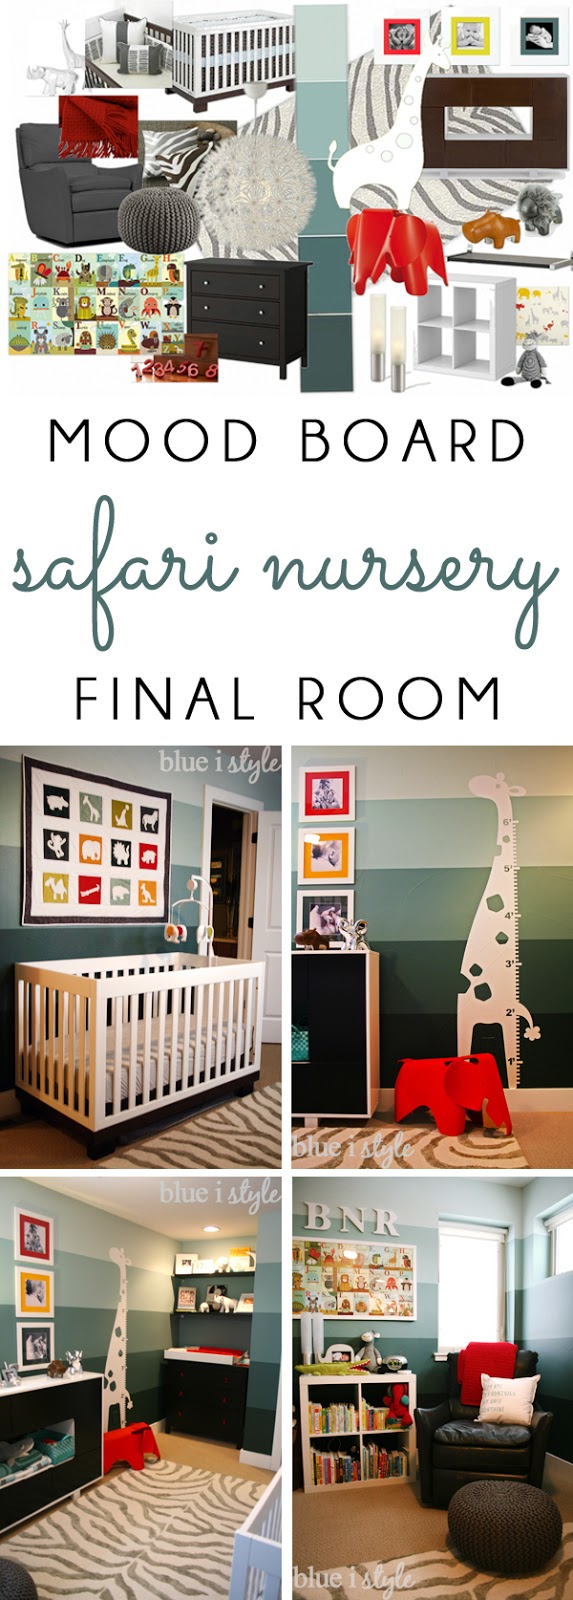 Animal themed nursery mood board and photos